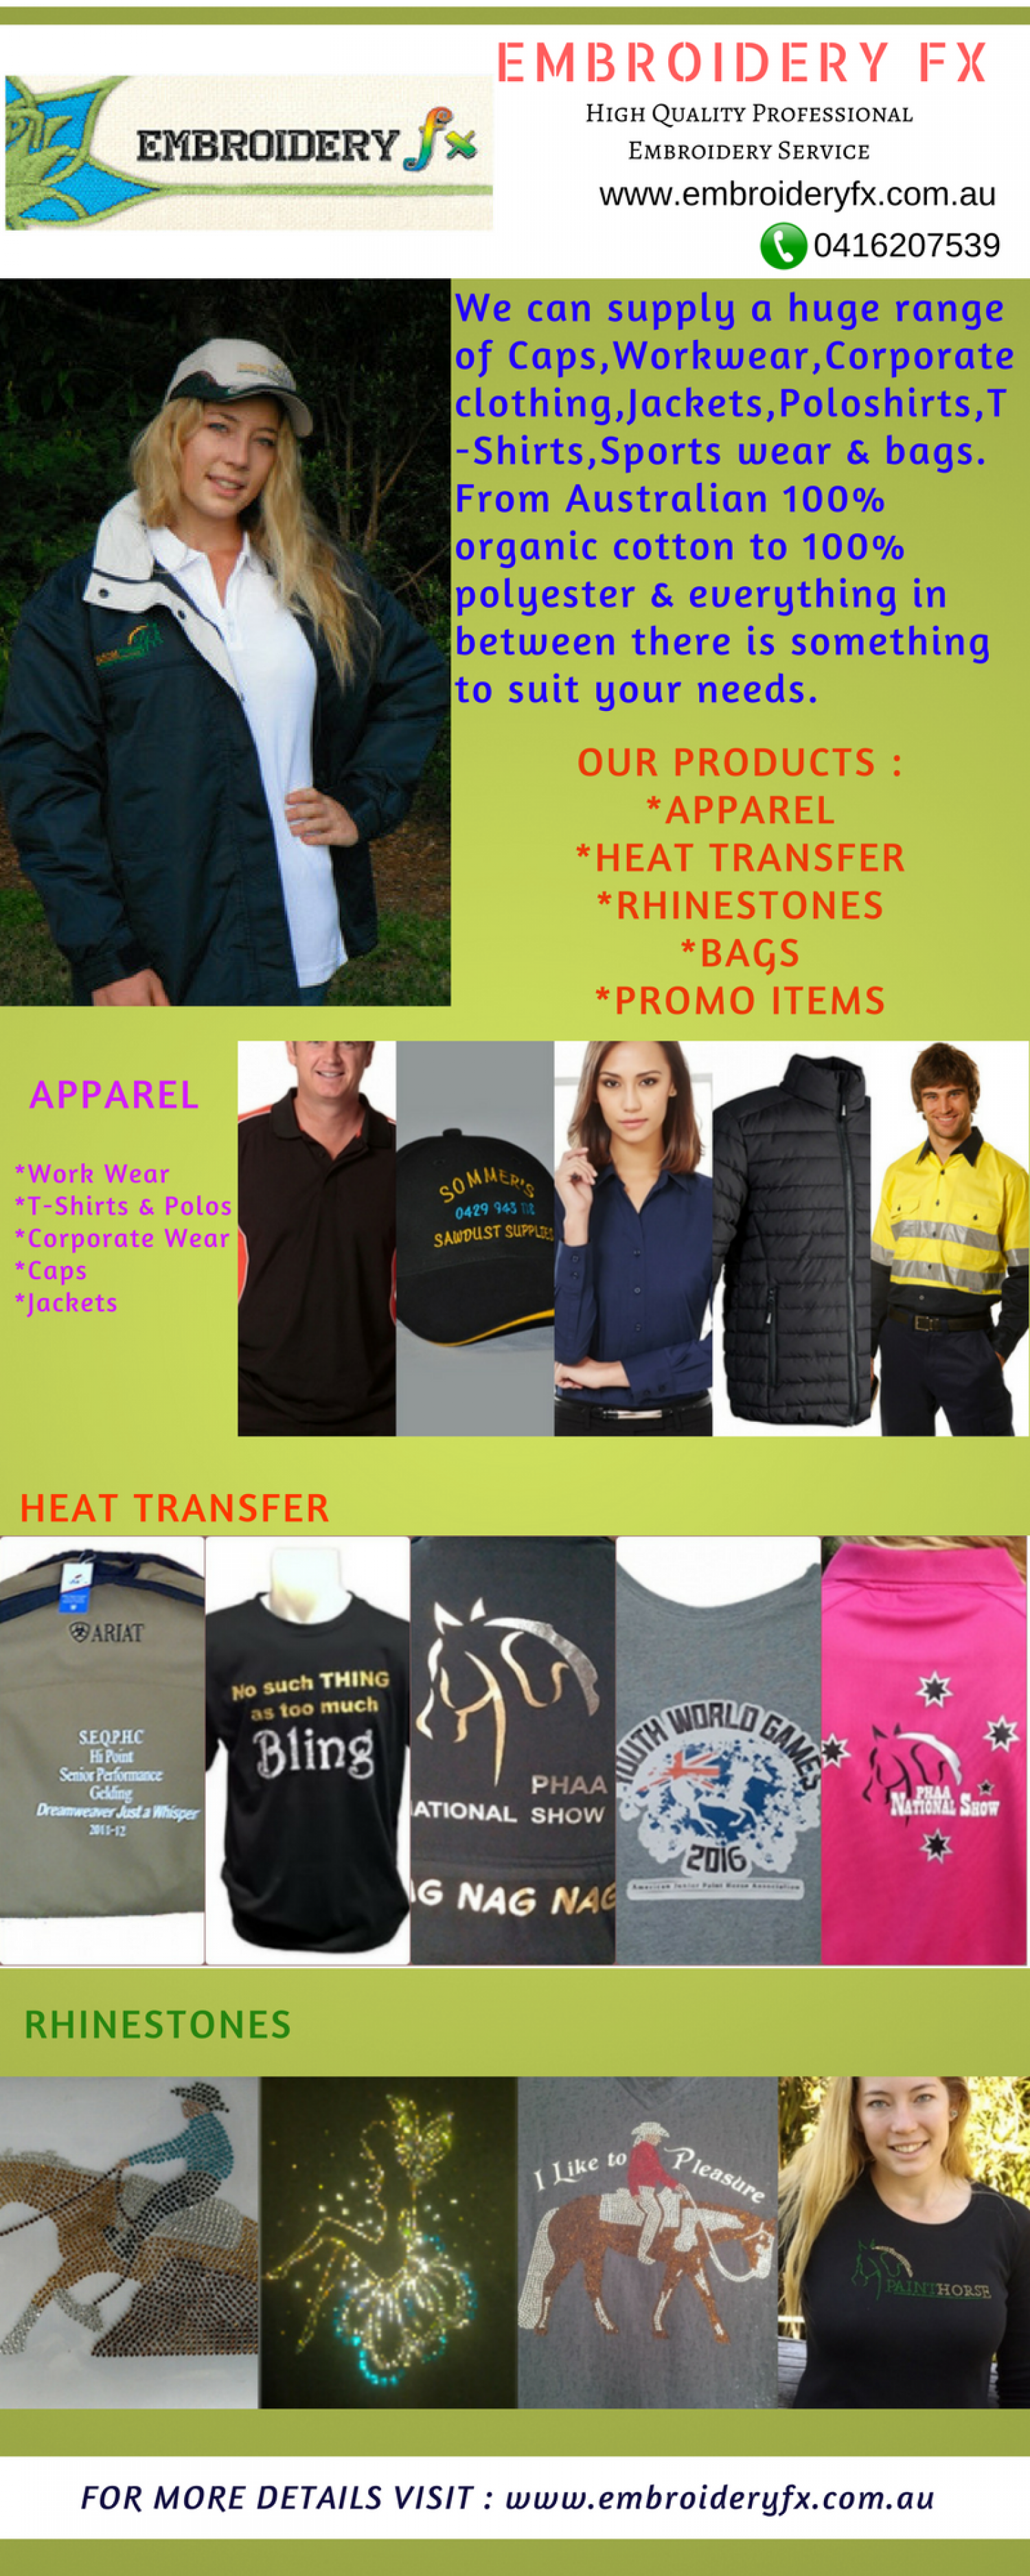 9db137c18 A professional embroidery service to personalise apparel with your logo,&  name or choose a